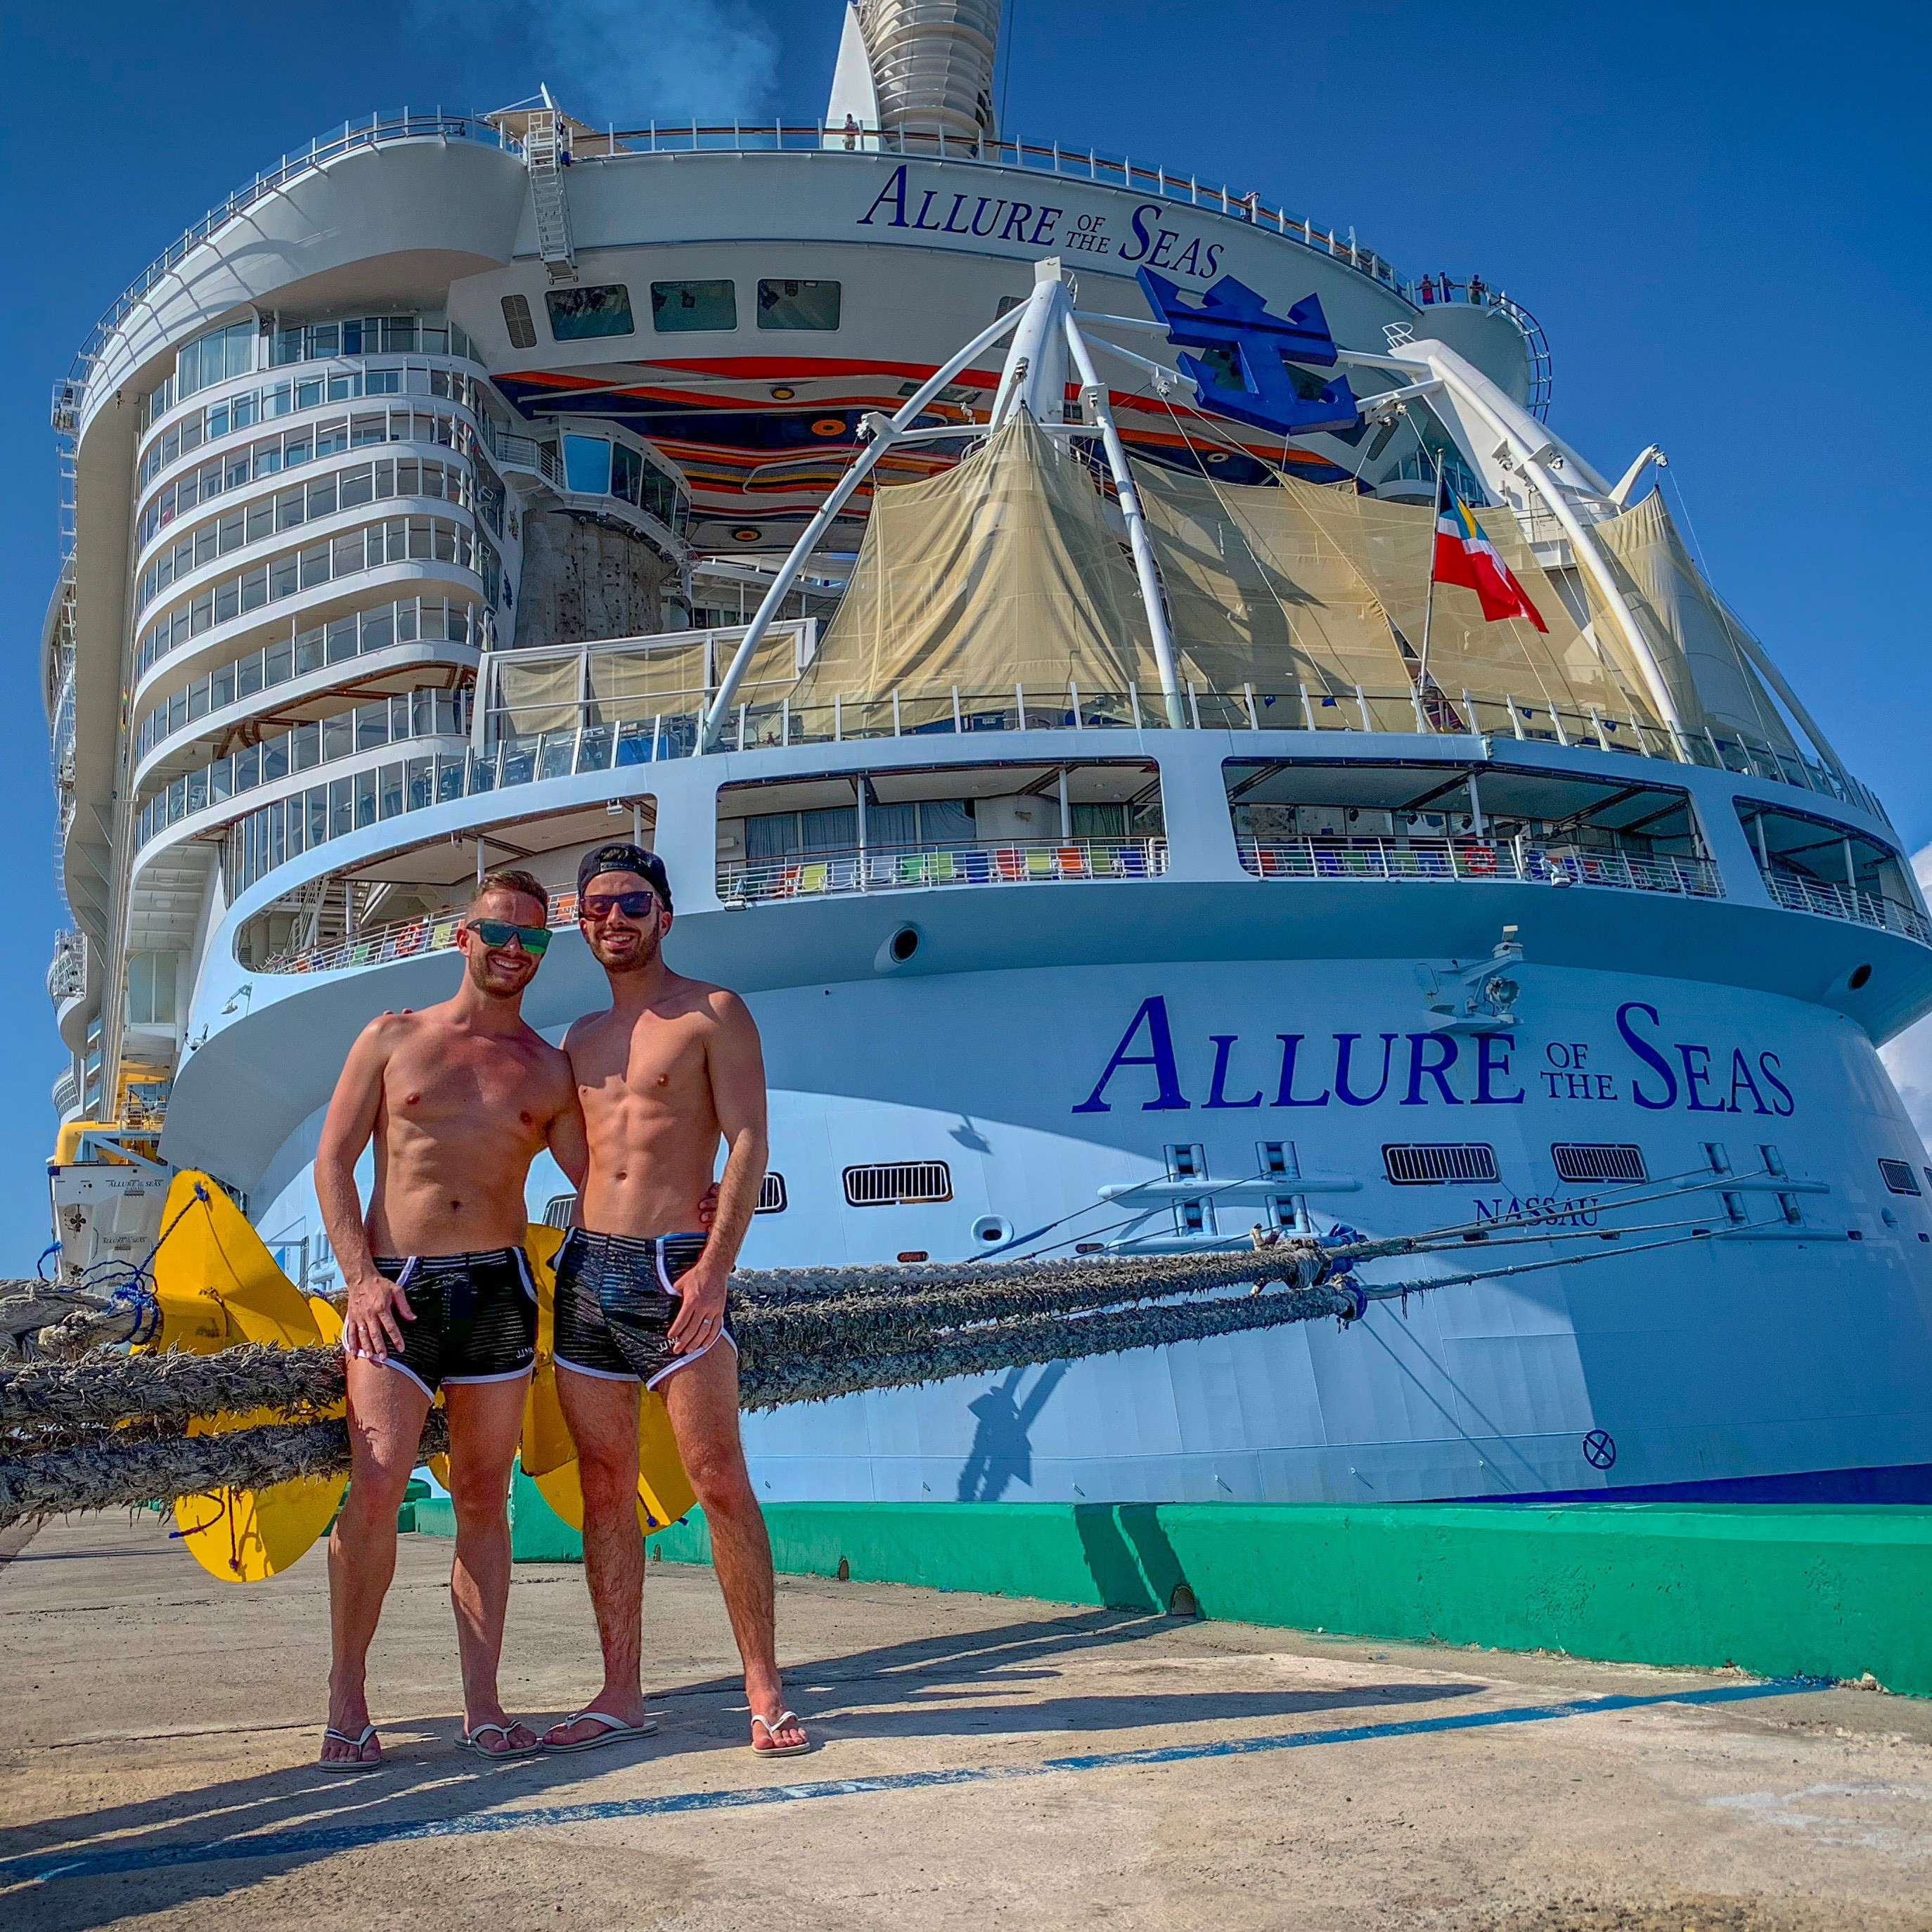 Atlantis Gay Cruise: 12 Things you need to know 2021!